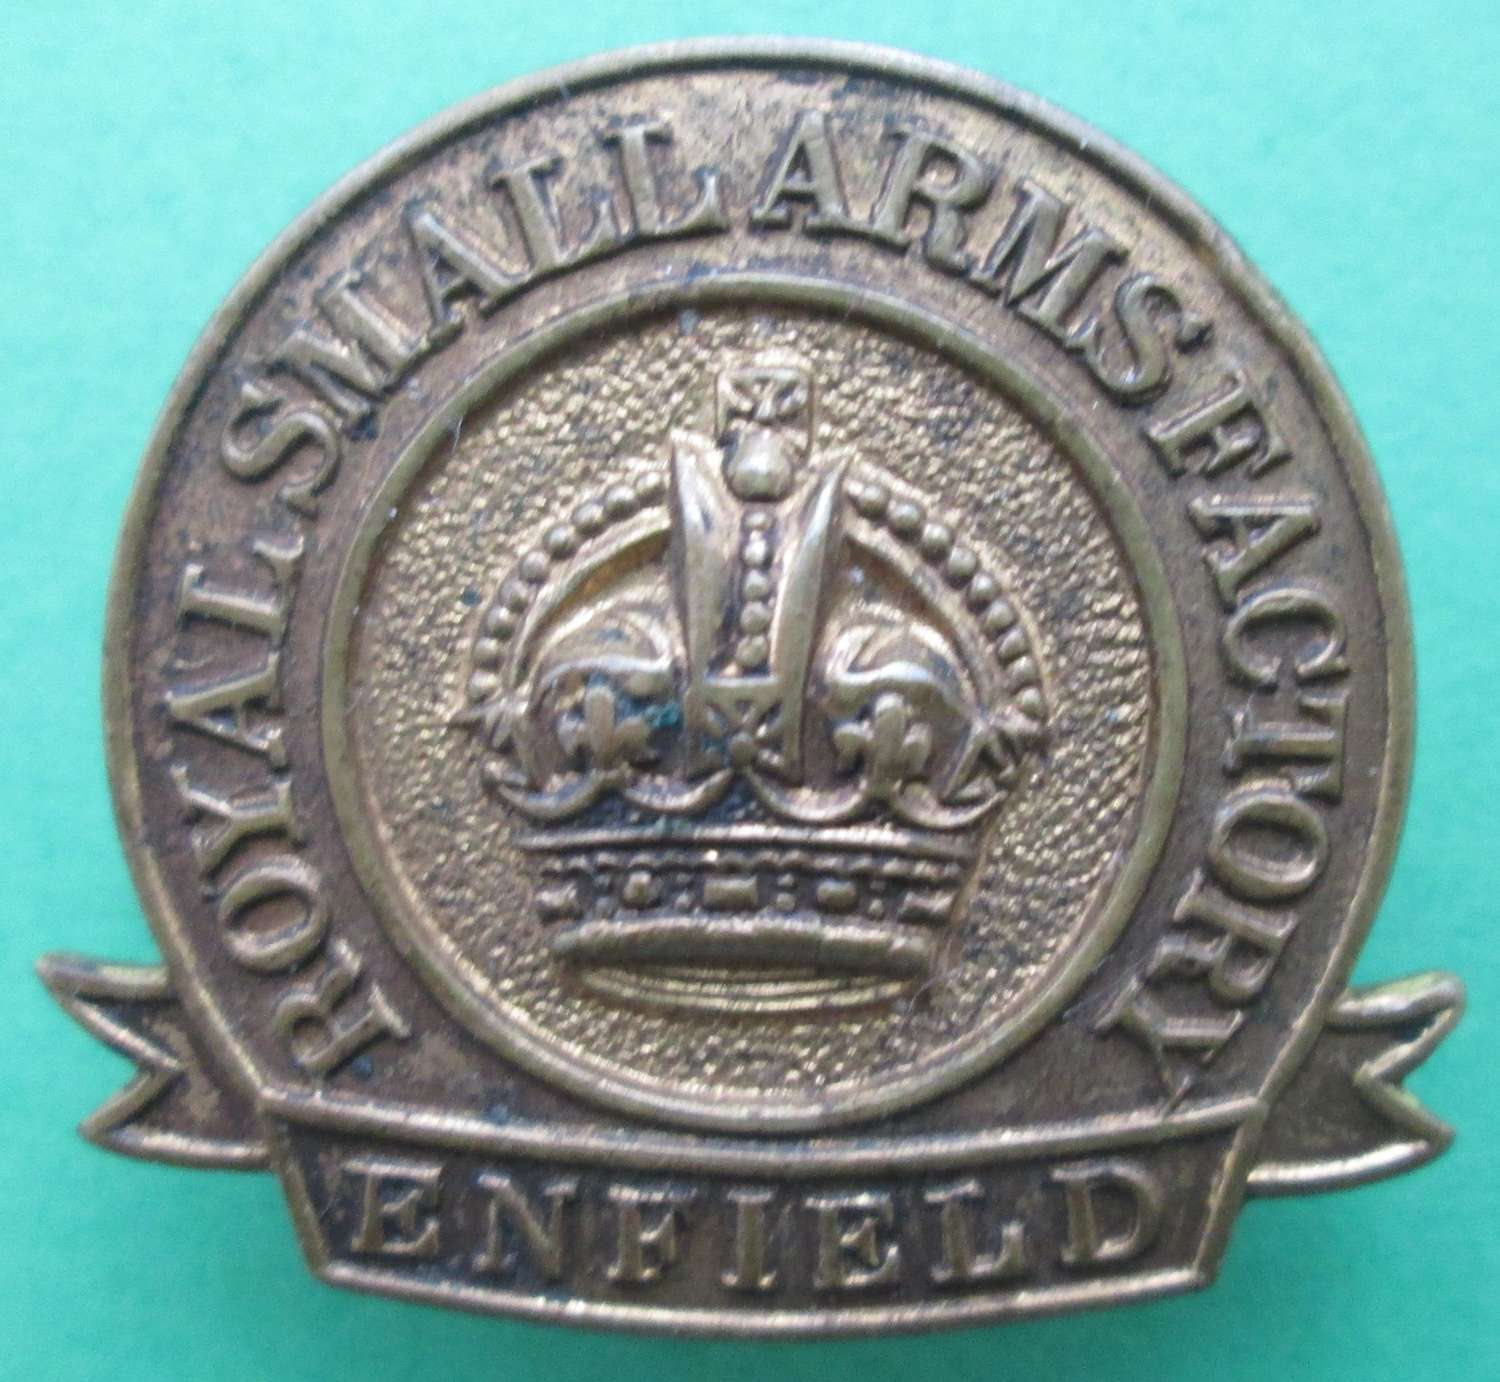 A ROYAL SMALL ARMS FACTORY (ENFIELD) LAPEL BADGE